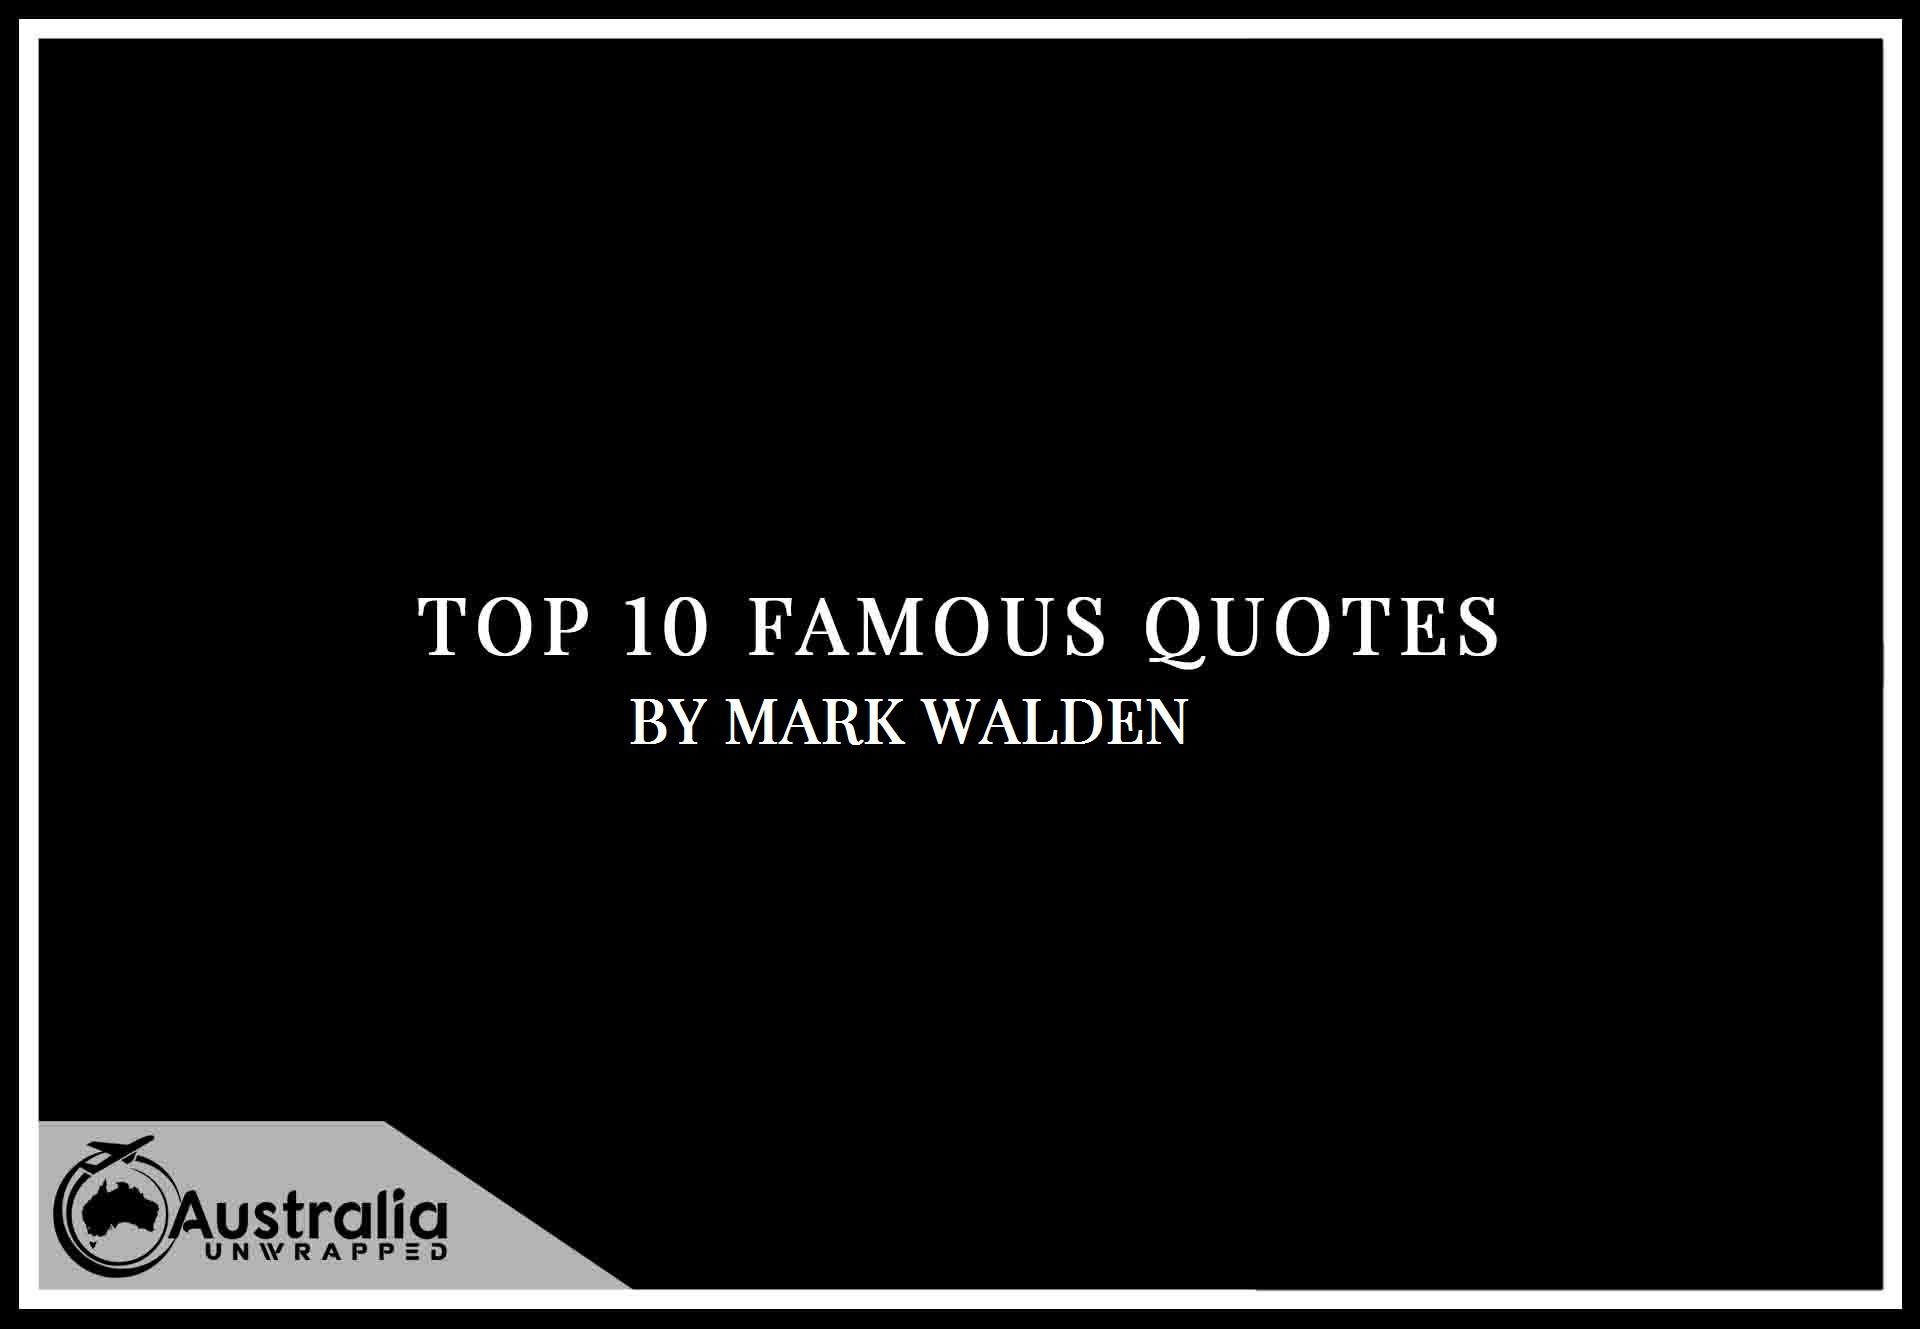 Mark Walden's Top 10 Popular and Famous Quotes